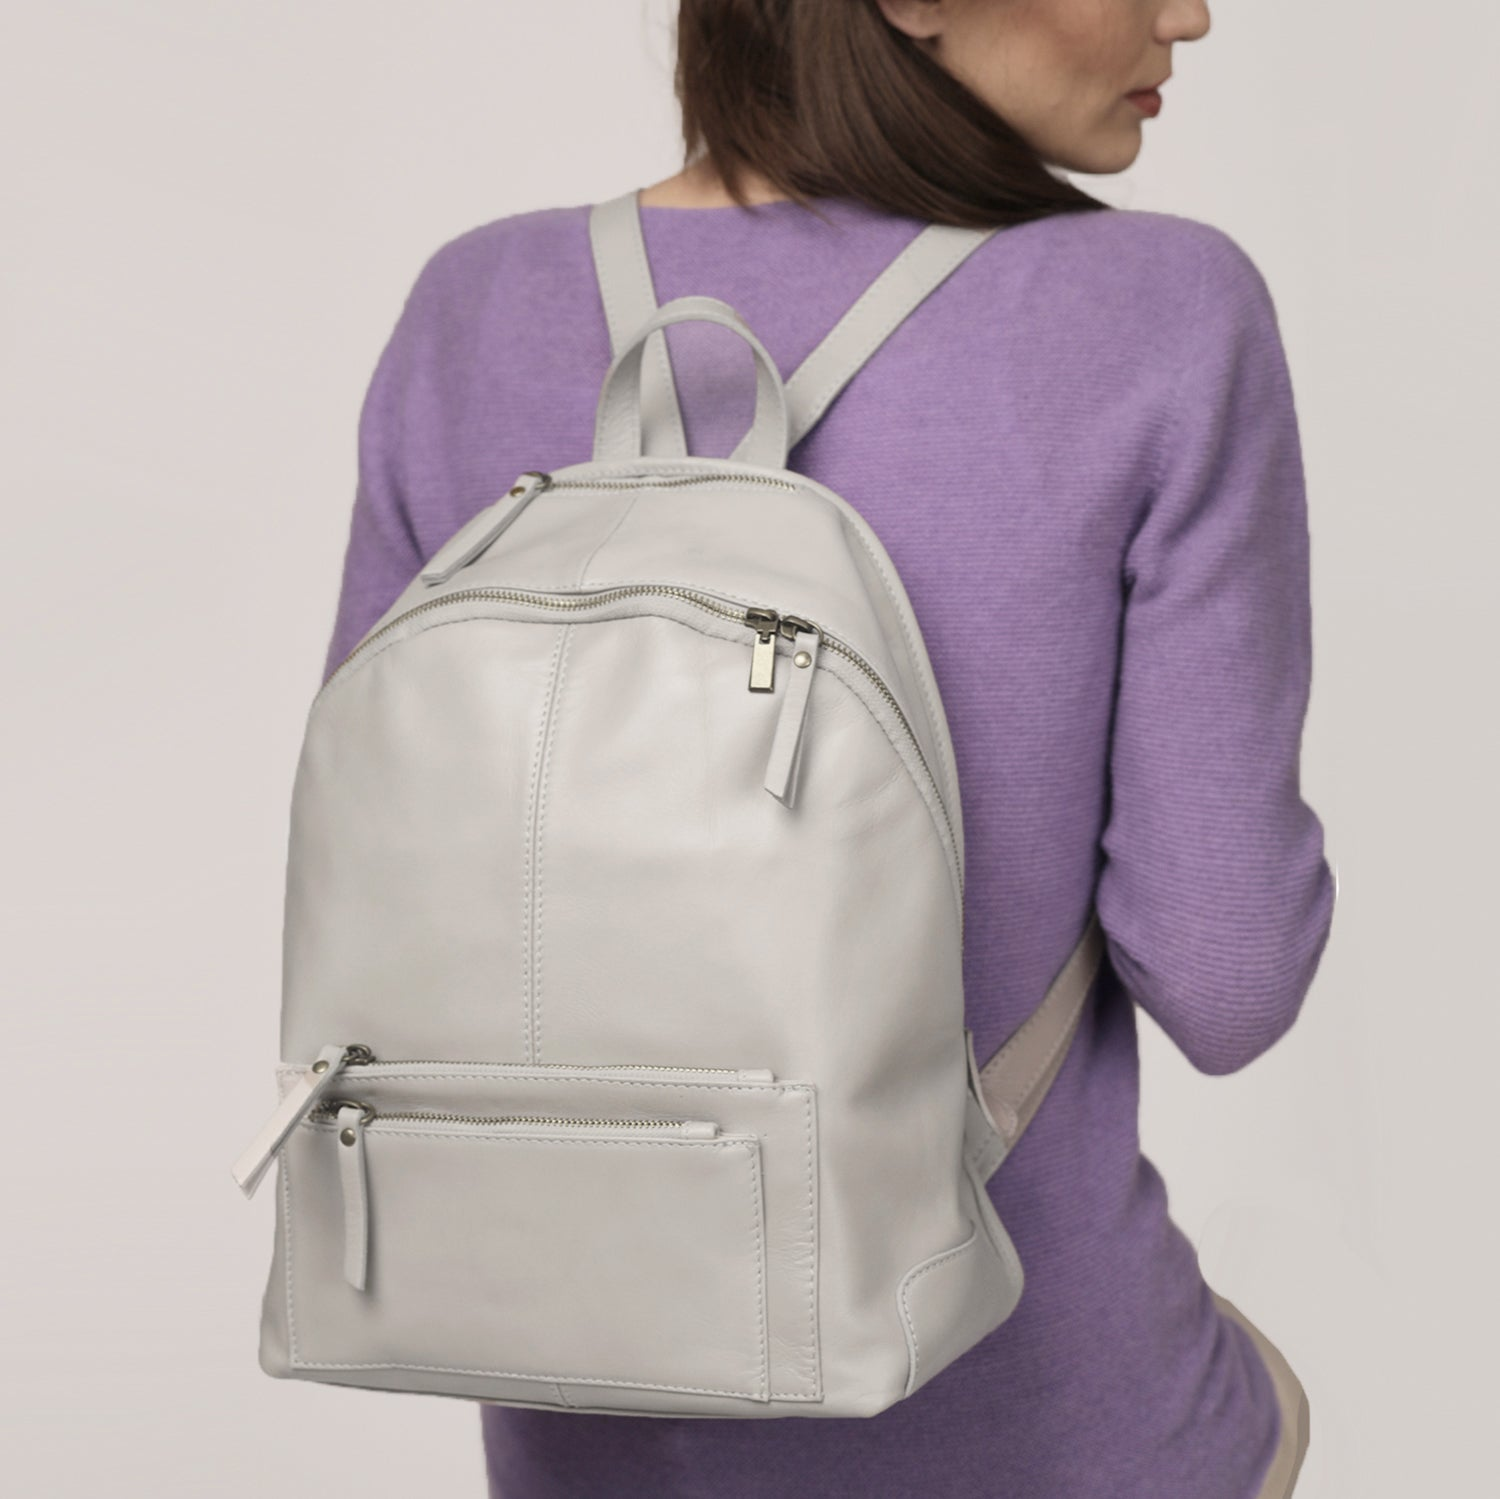 CLEARANCE SALE The Large Vera Backpack